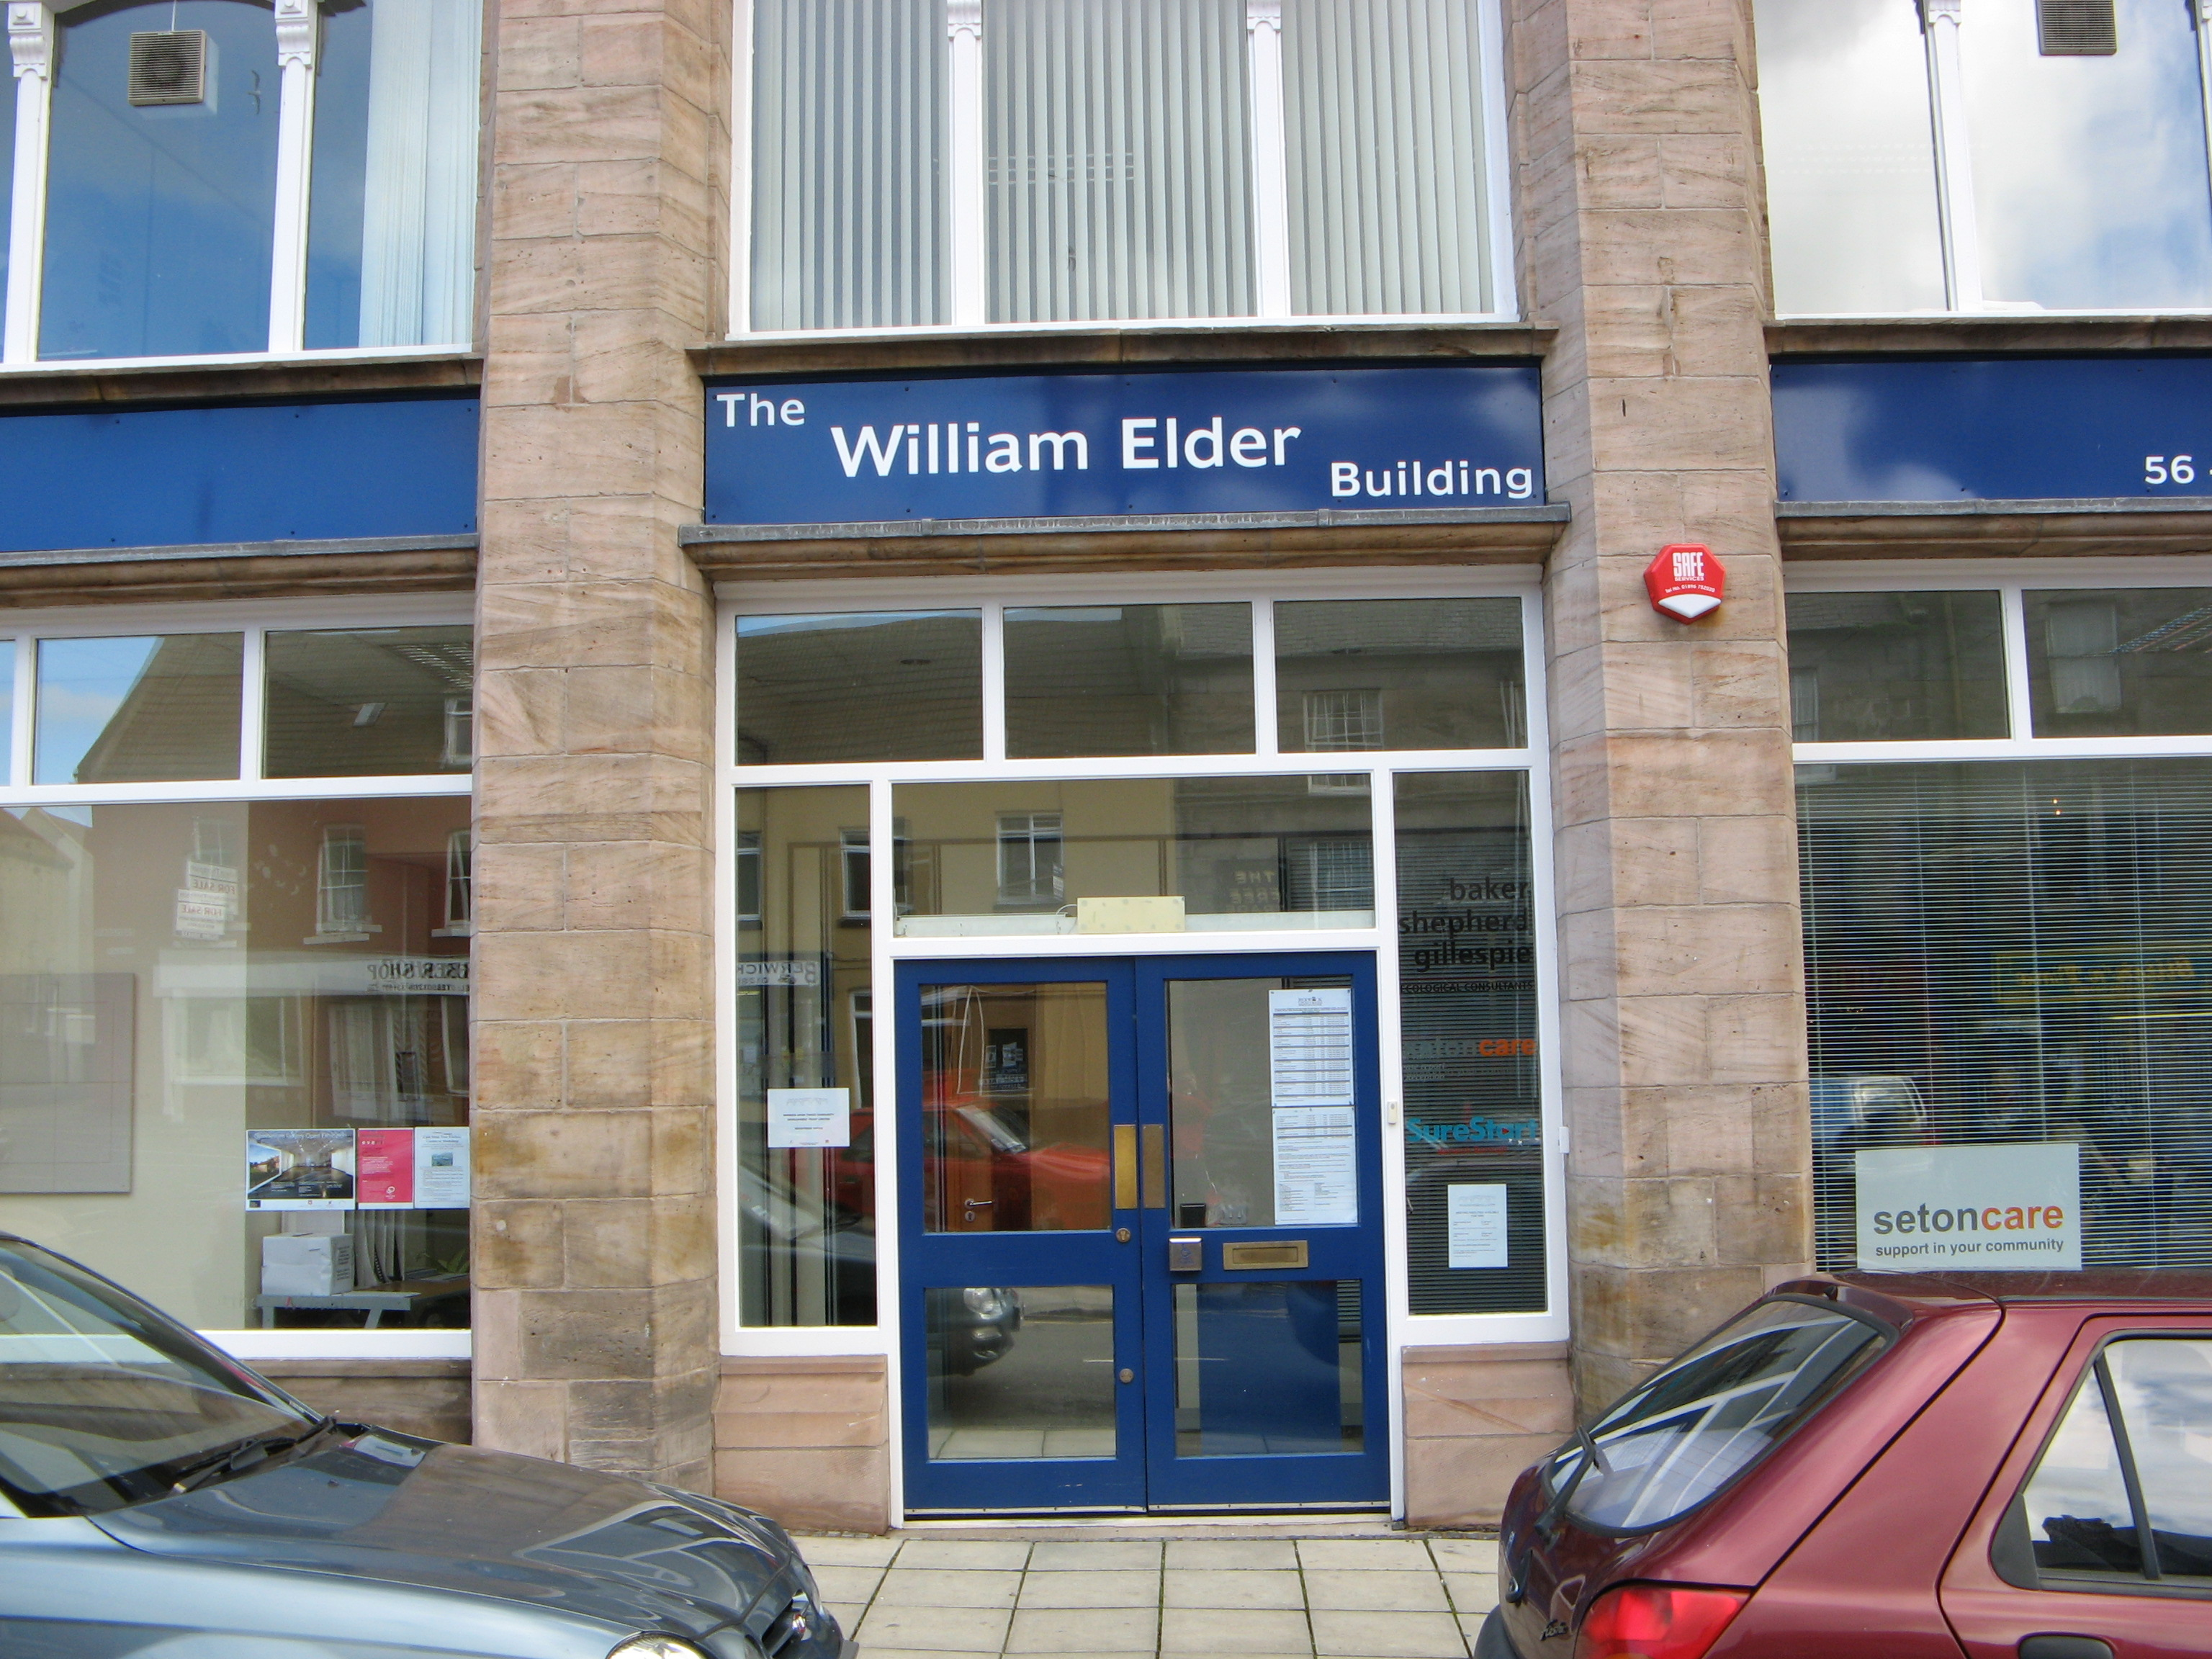 The William Elder Building